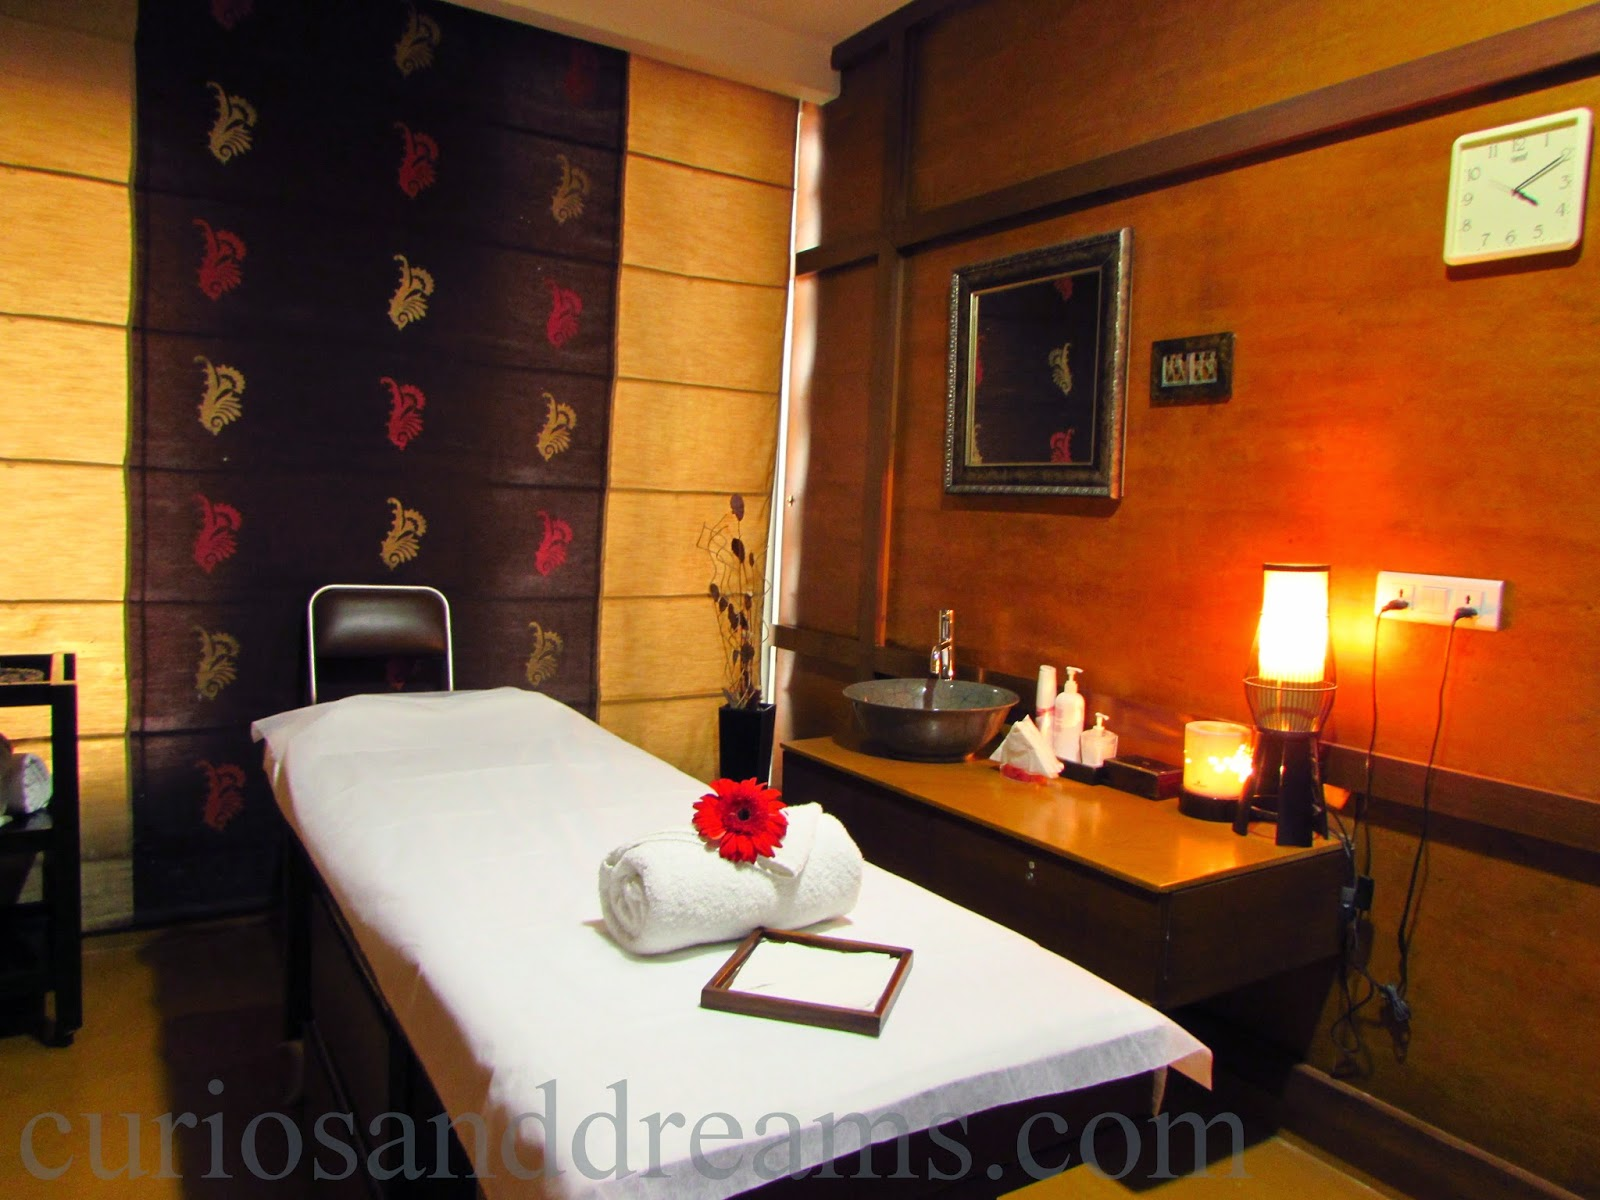 Bodycraft Salon and Spa Bangalore, Bodycraft Salon and Spa Bangalore review